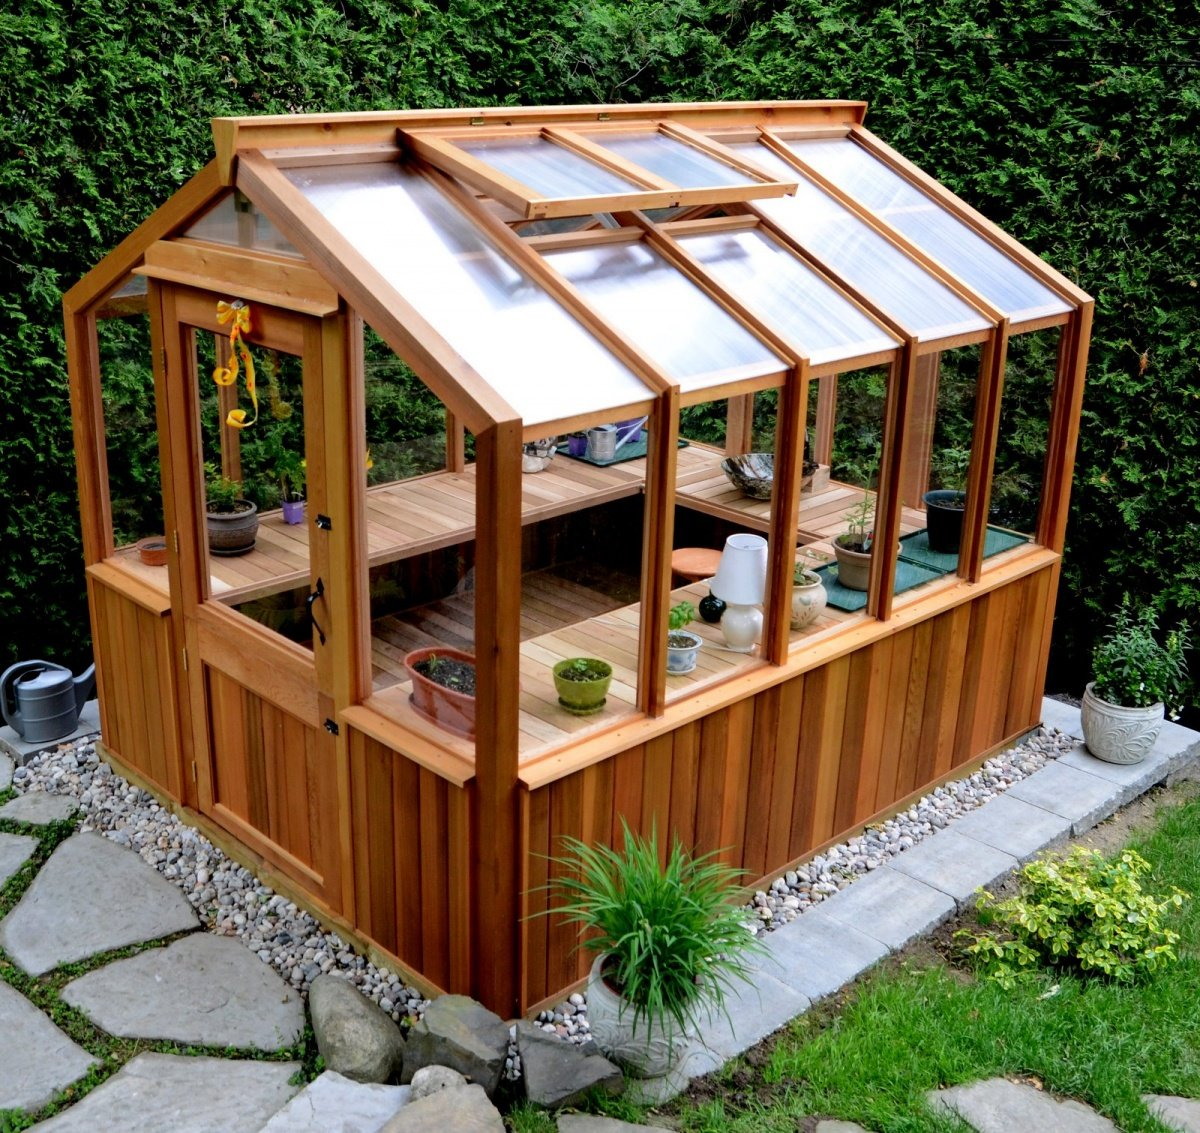 Greenhouse SHE Shed - 22 Awesome DIY Kit Ideas